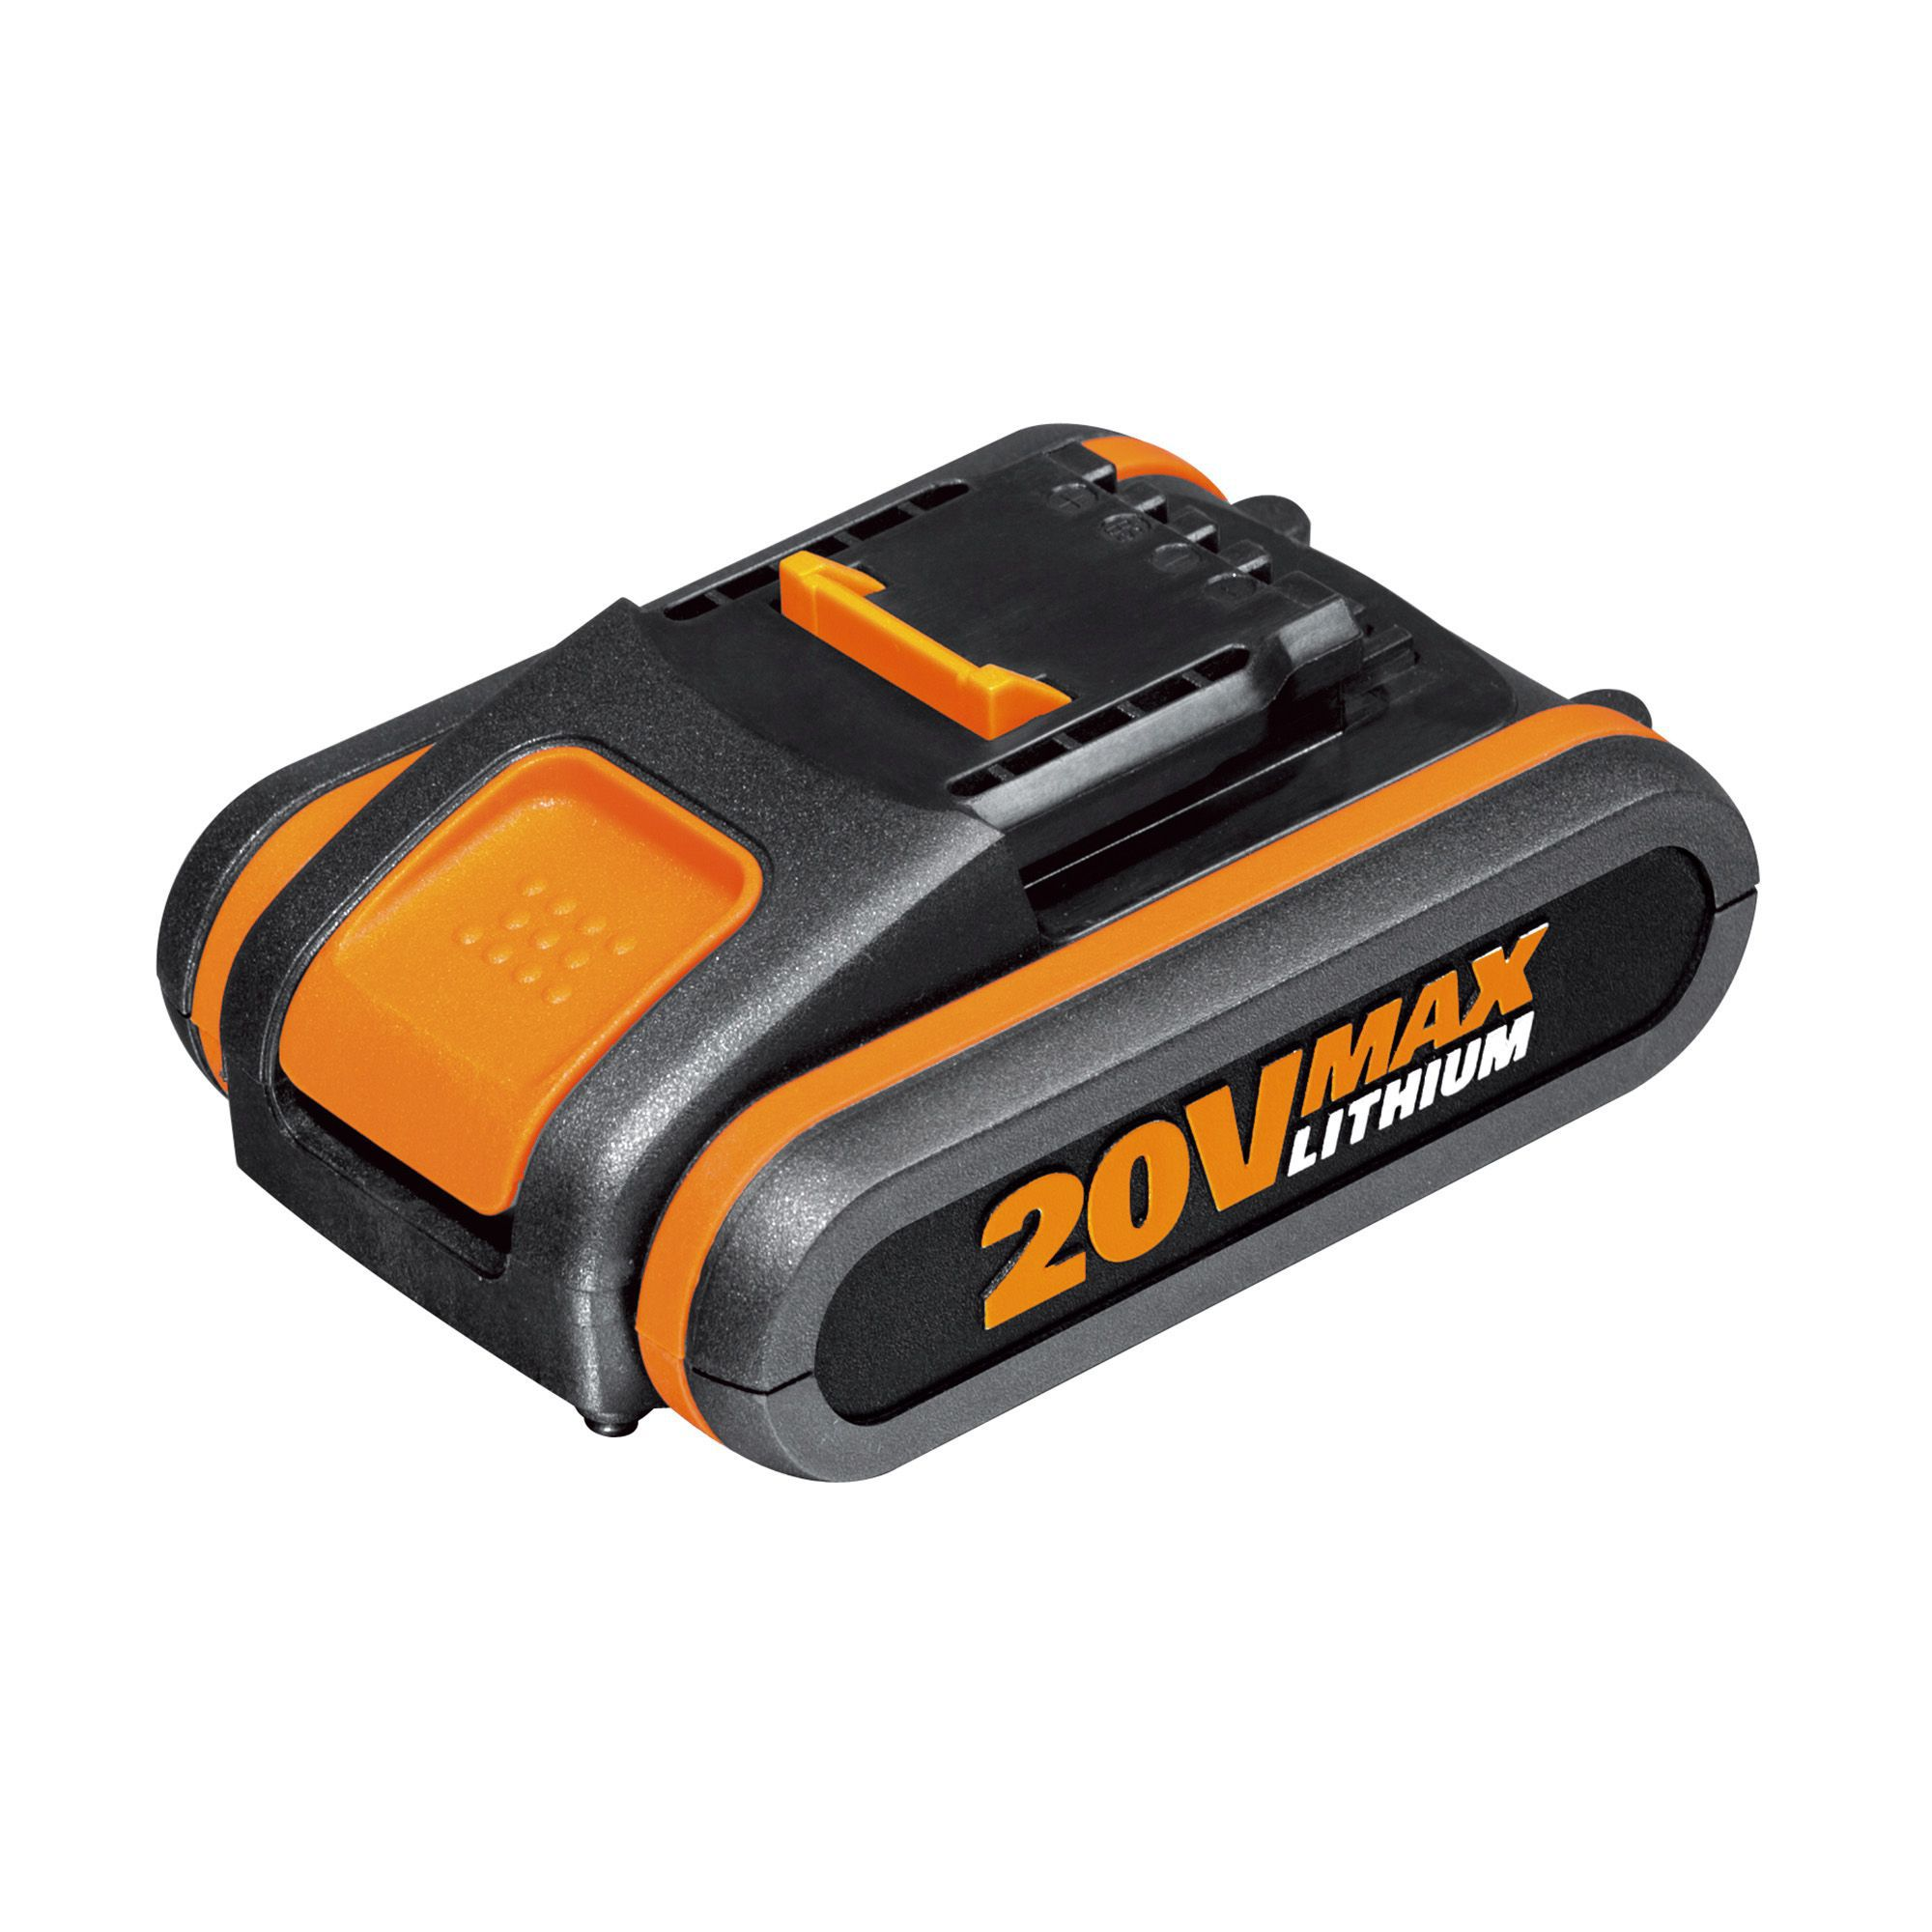 worx powershare 20v li ion 2a battery departments tradepoint. Black Bedroom Furniture Sets. Home Design Ideas